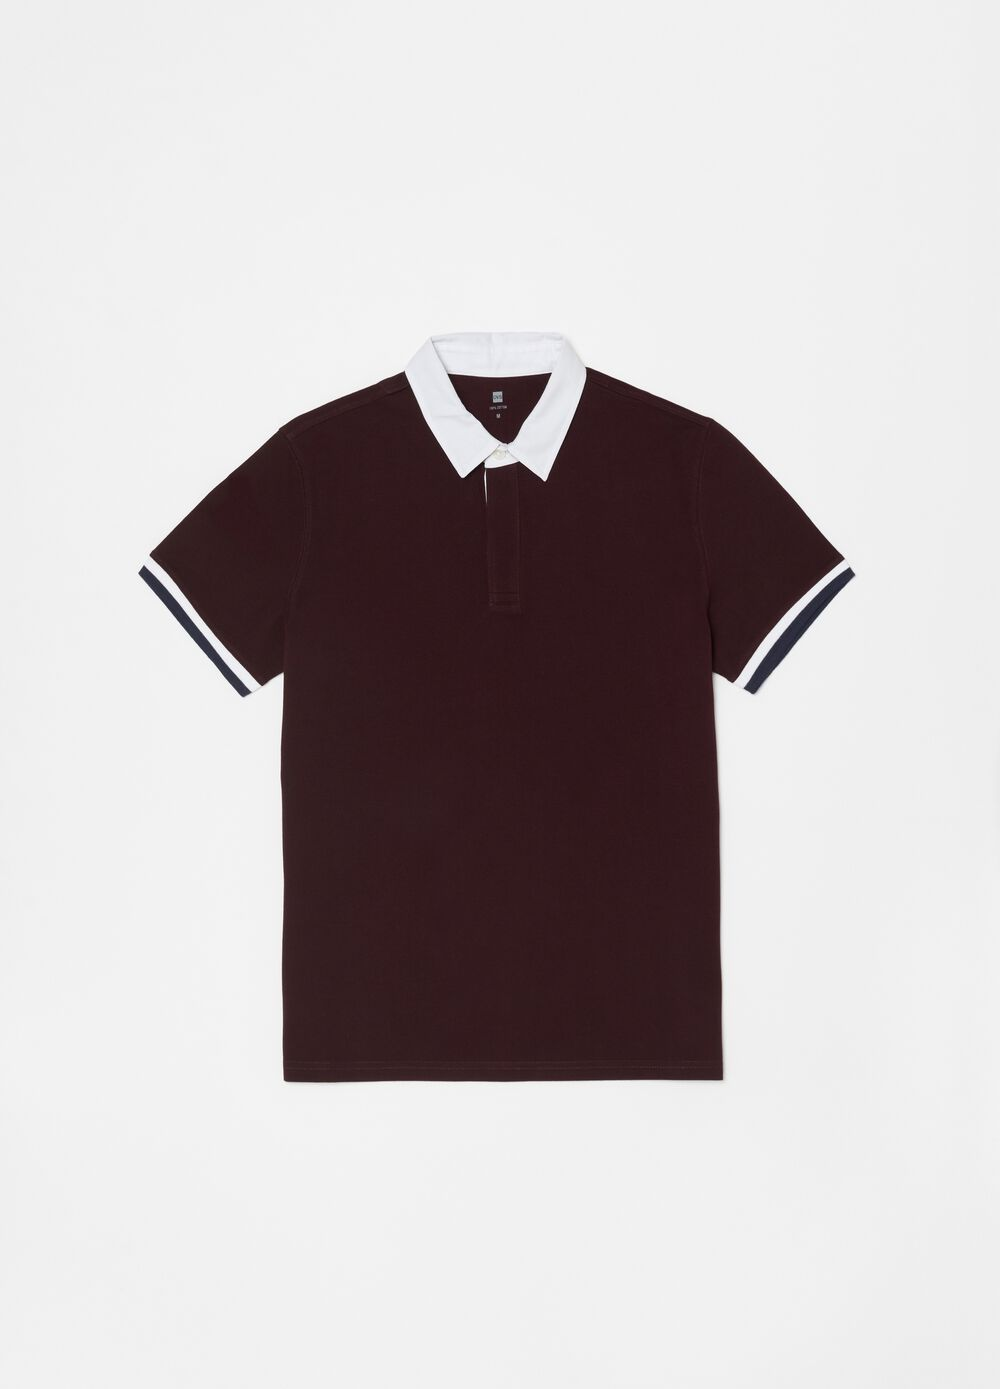 Polo shirt in 100% cotton with contrasting collar